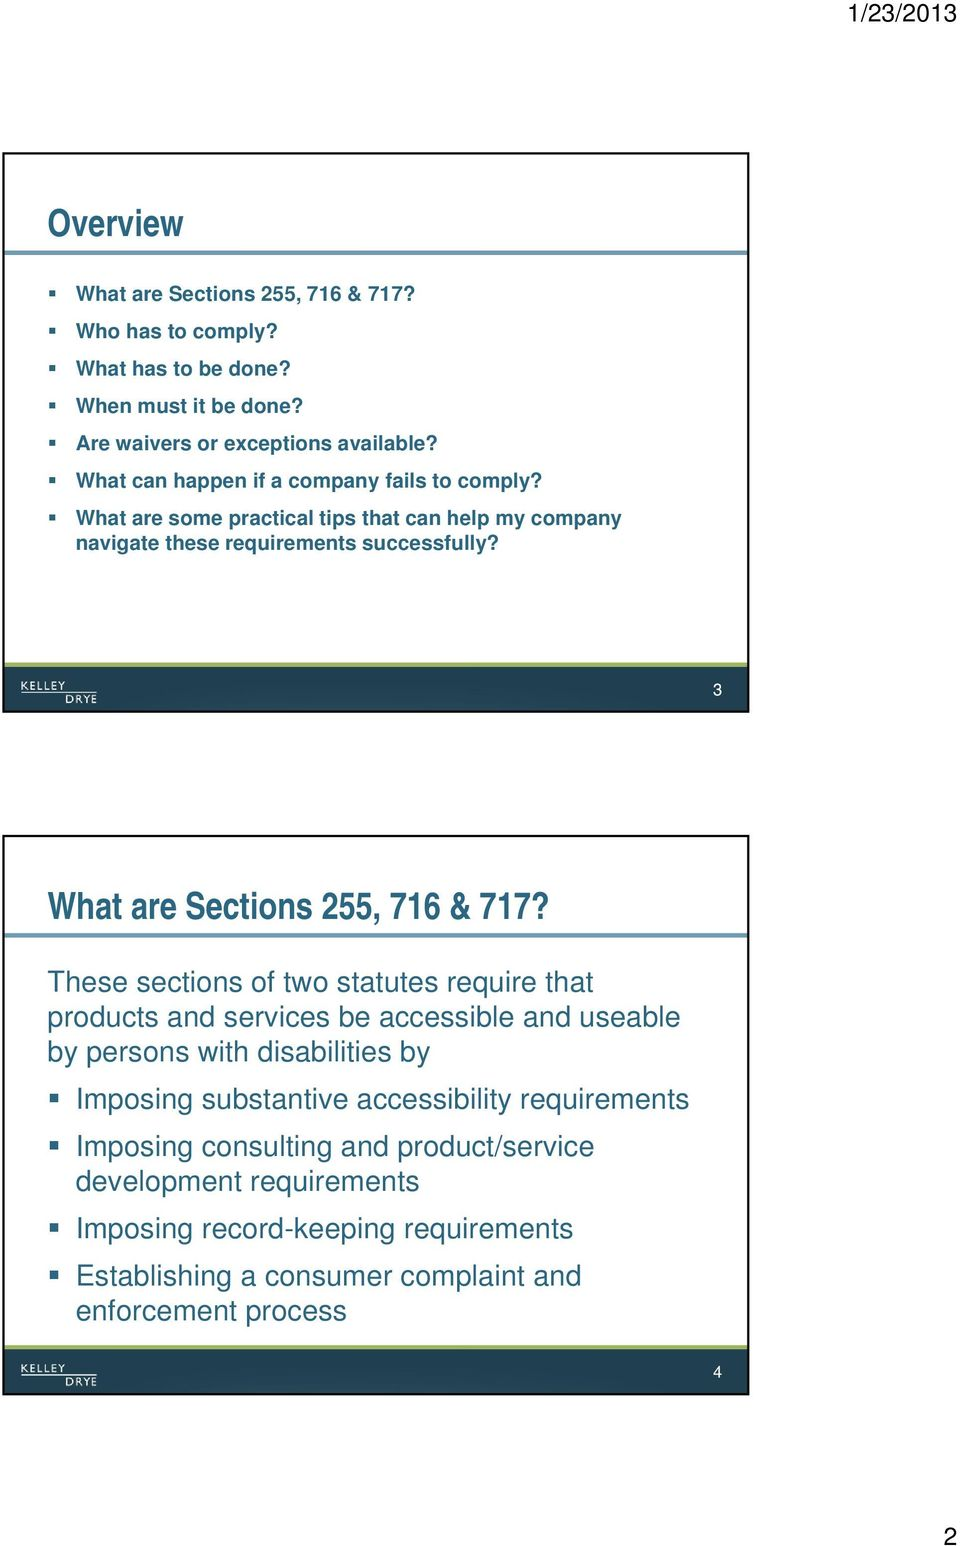 3 What are Sections 255, 716 & 717?